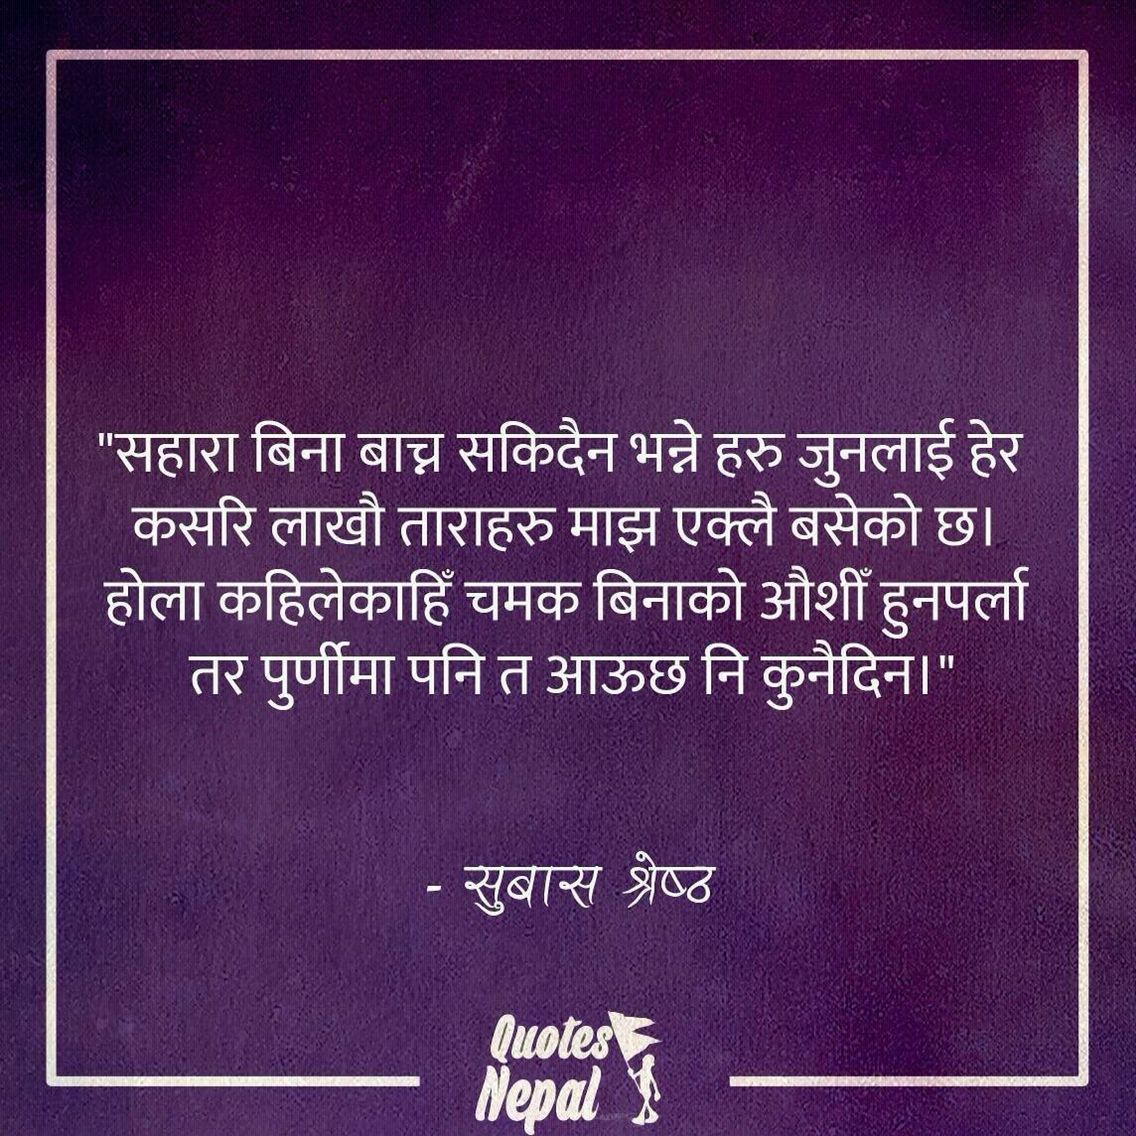 A Quote In Nepali Quotes Pinterest Quotes Motivational Quotes